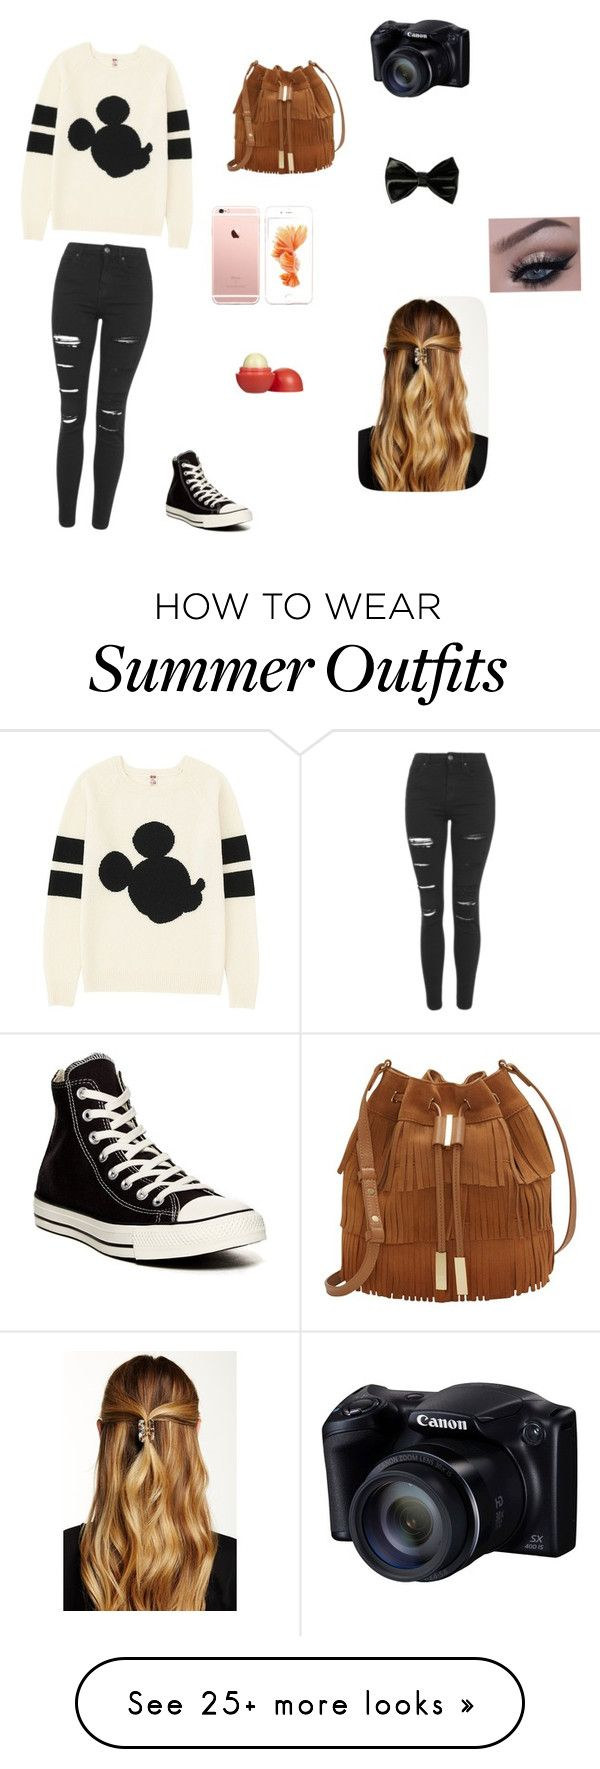 """Random outfit"" by huskiesarecute on Polyvore featuring Uniqlo, Topshop, Converse, Vince Camuto, Natasha Accessories and Eos"